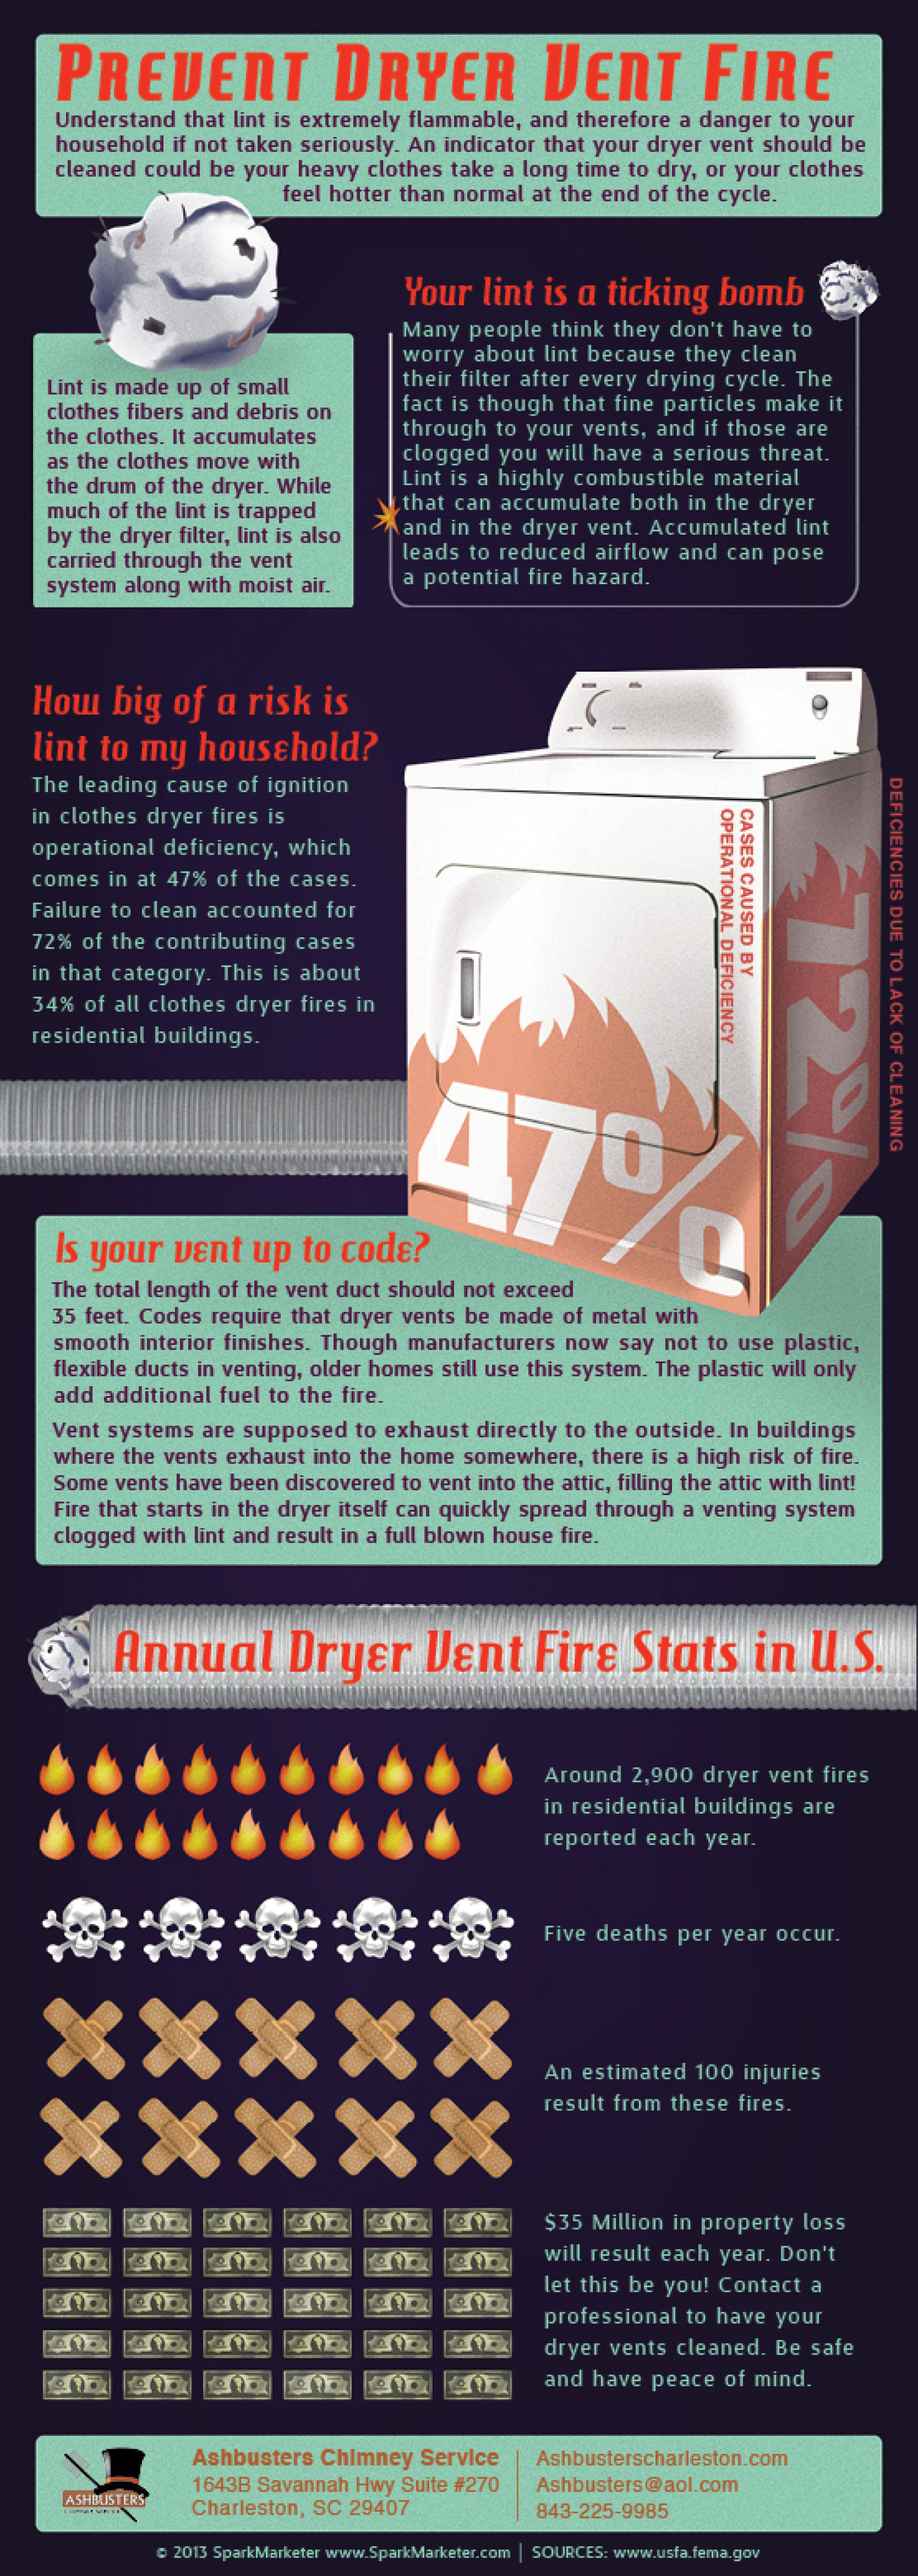 Prevent Dryer Vent Fire Infographic